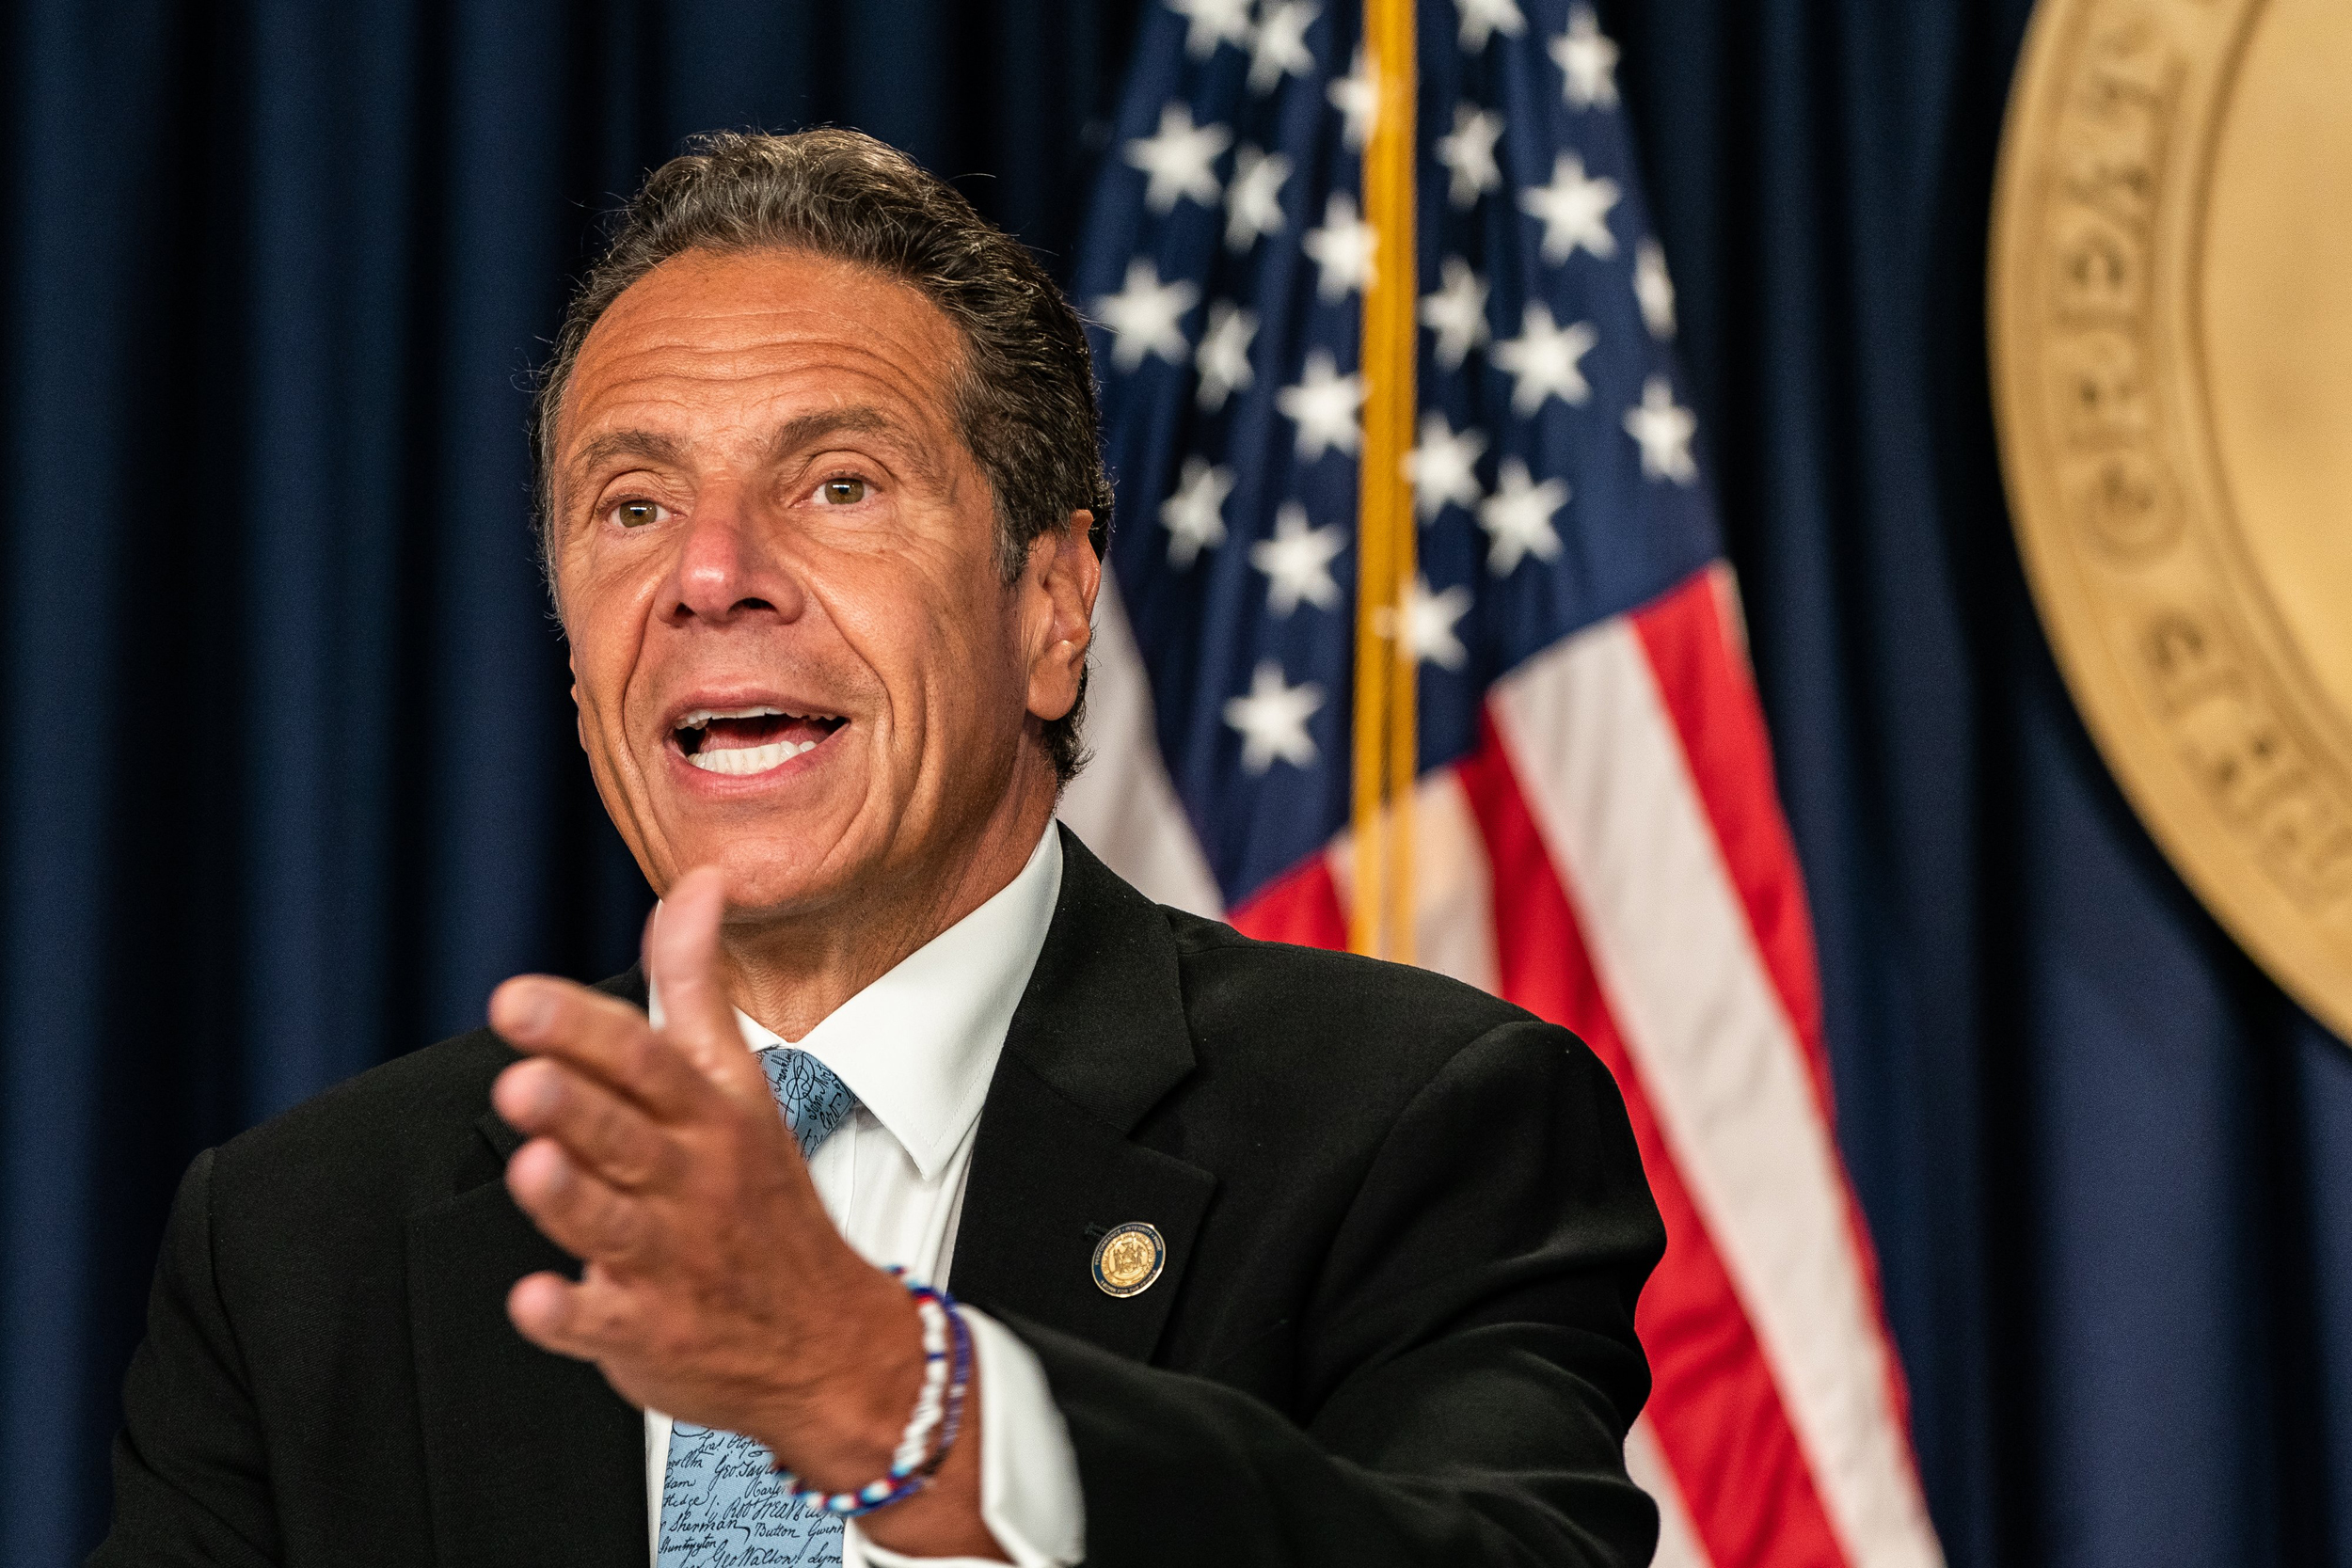 Andrew Cuomo stripped of special Emmy after resignation